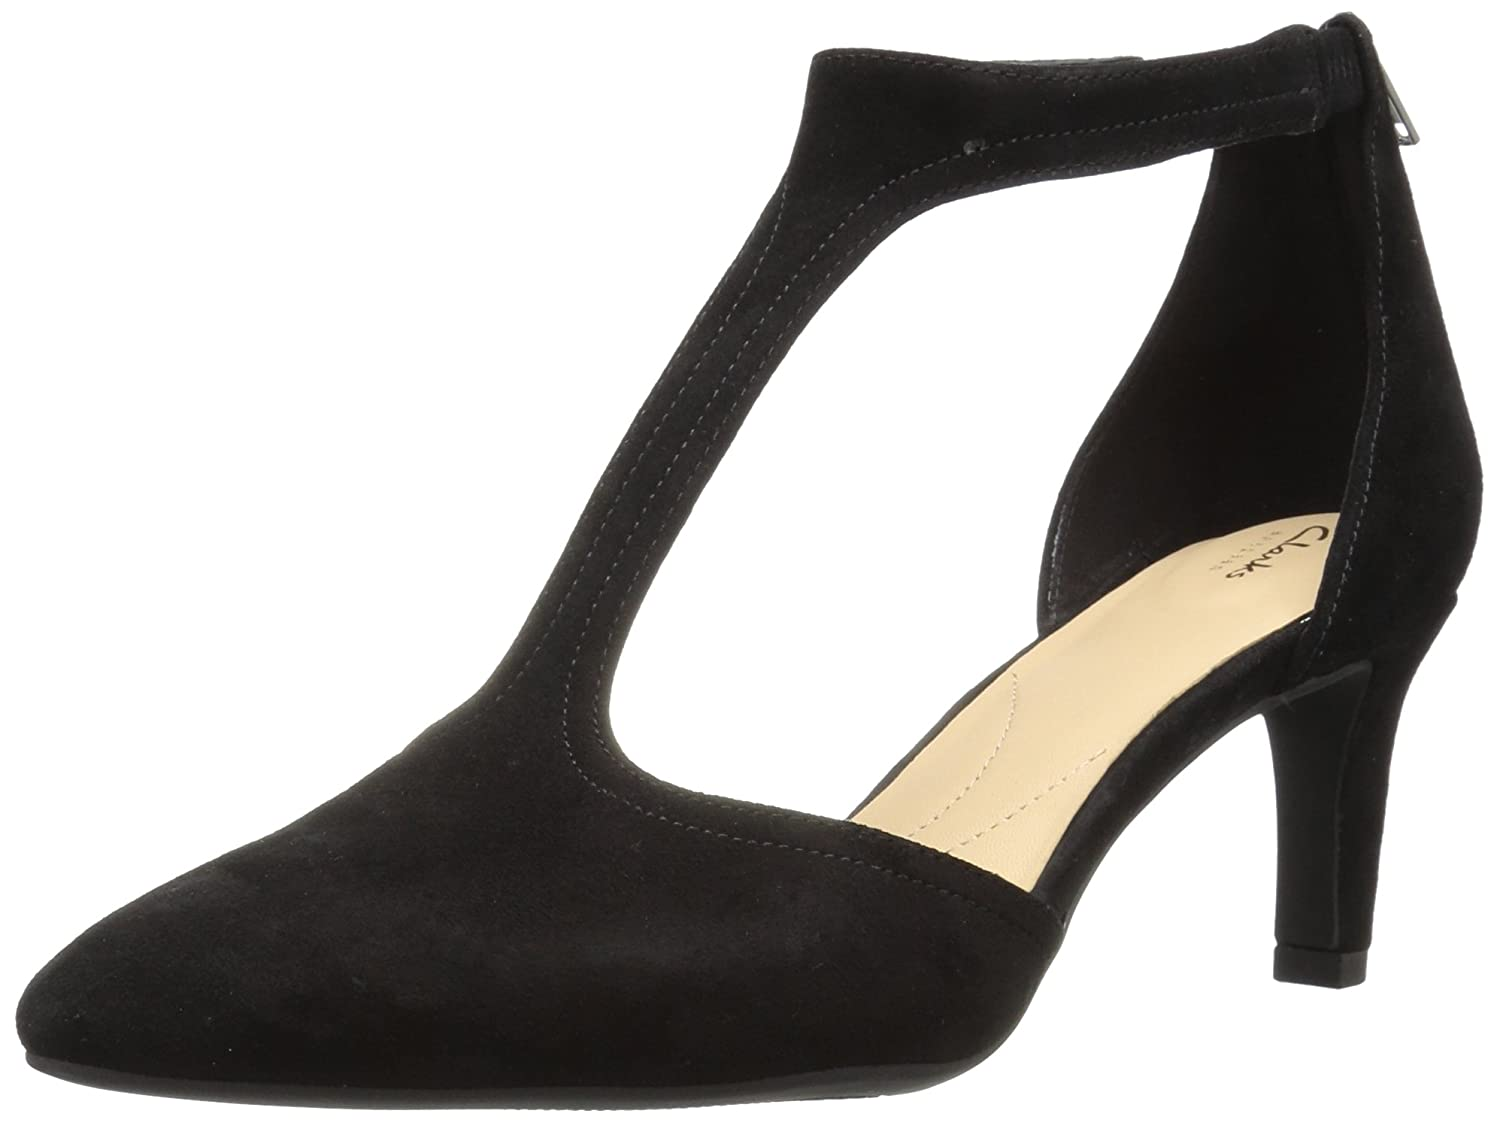 CLARKS Women's Calla Lily Pump B0721MYTWS 7 B(M) US|Black Suede